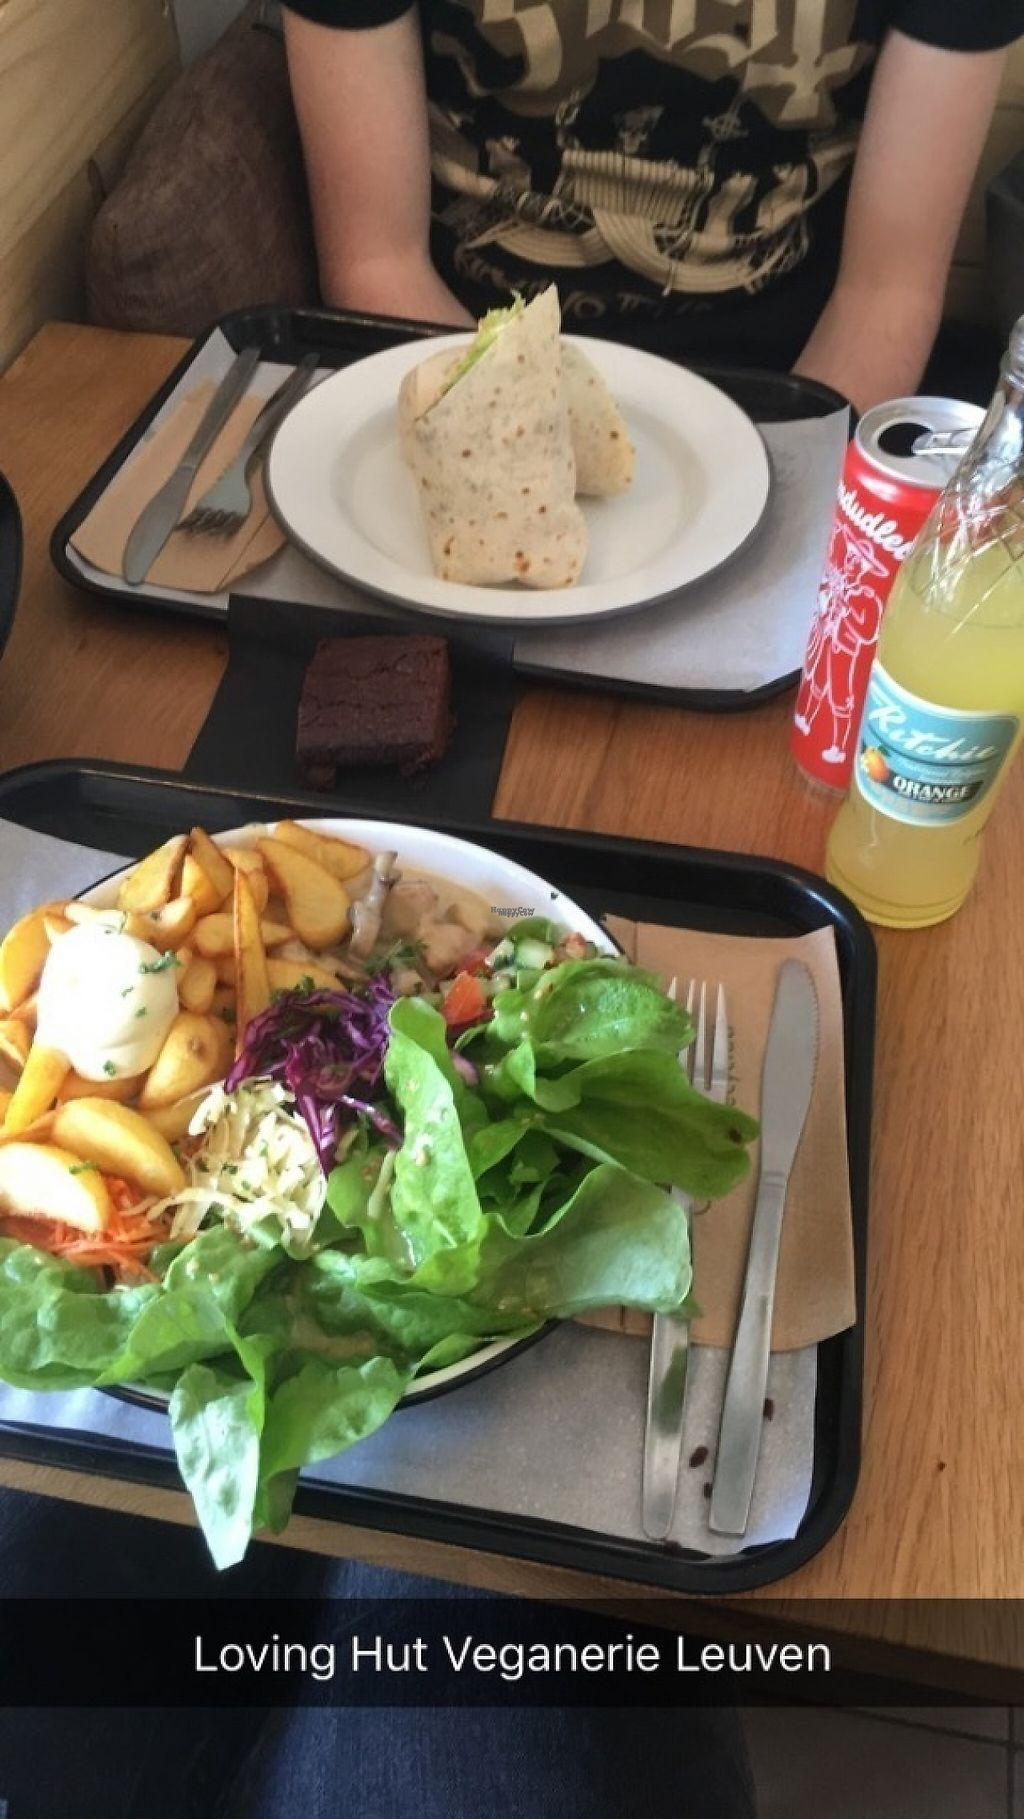 "Photo of Loving Hut Veganerie  by <a href=""/members/profile/aertskato"">aertskato</a> <br/>vegan vol-au-vent with lemonade and a brownie for €15 for Dagen Zonder Vlees <br/> April 14, 2017  - <a href='/contact/abuse/image/58660/247939'>Report</a>"